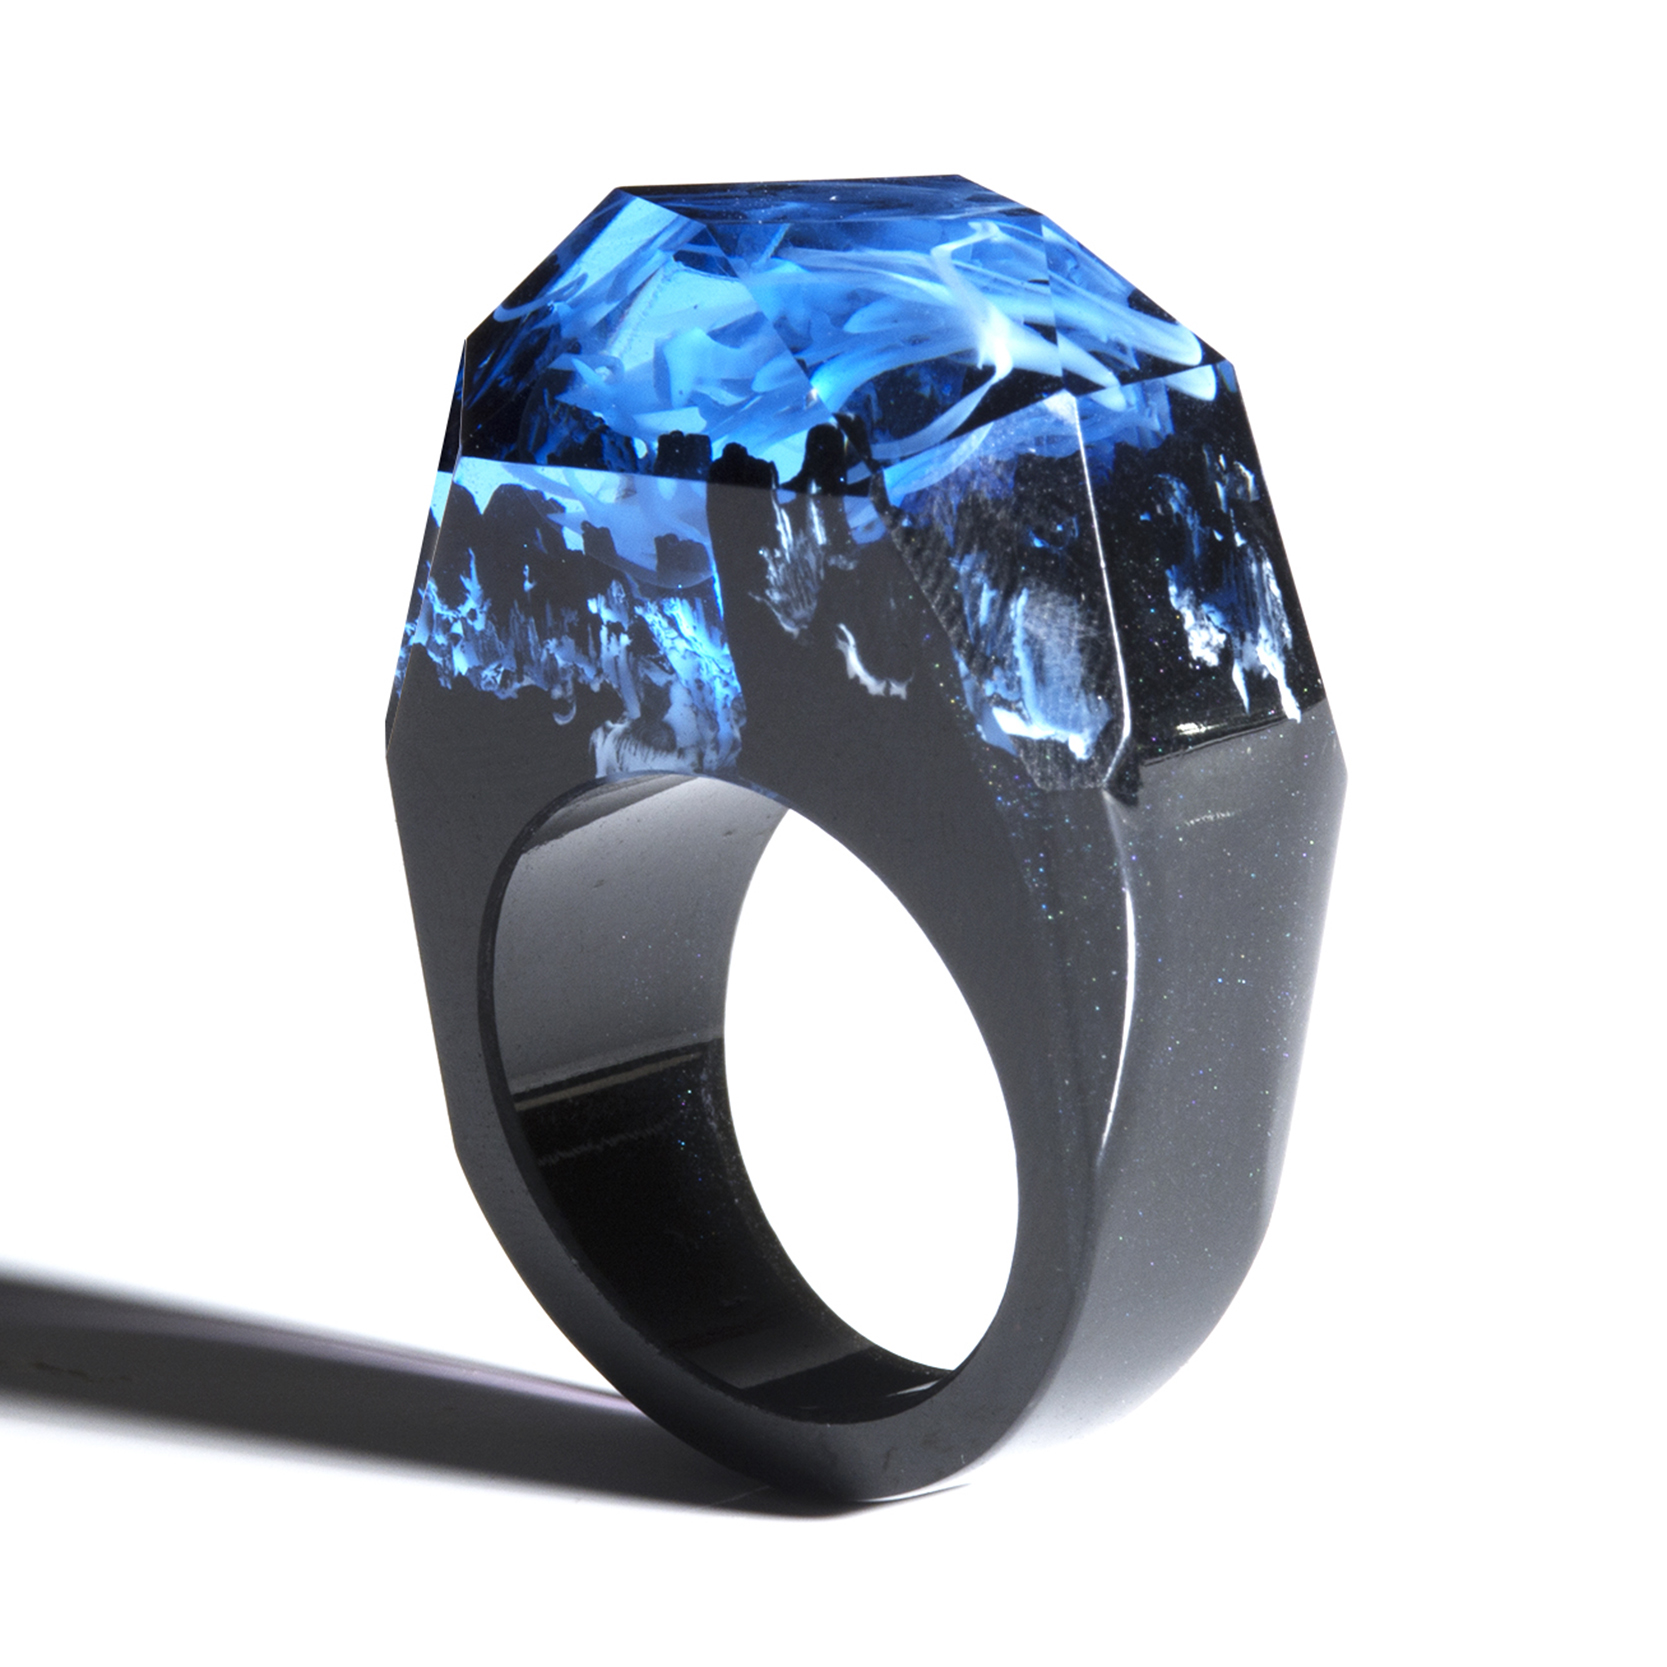 Hc12081cb835545d38648aa6c82fc06b6p - Forest Ring